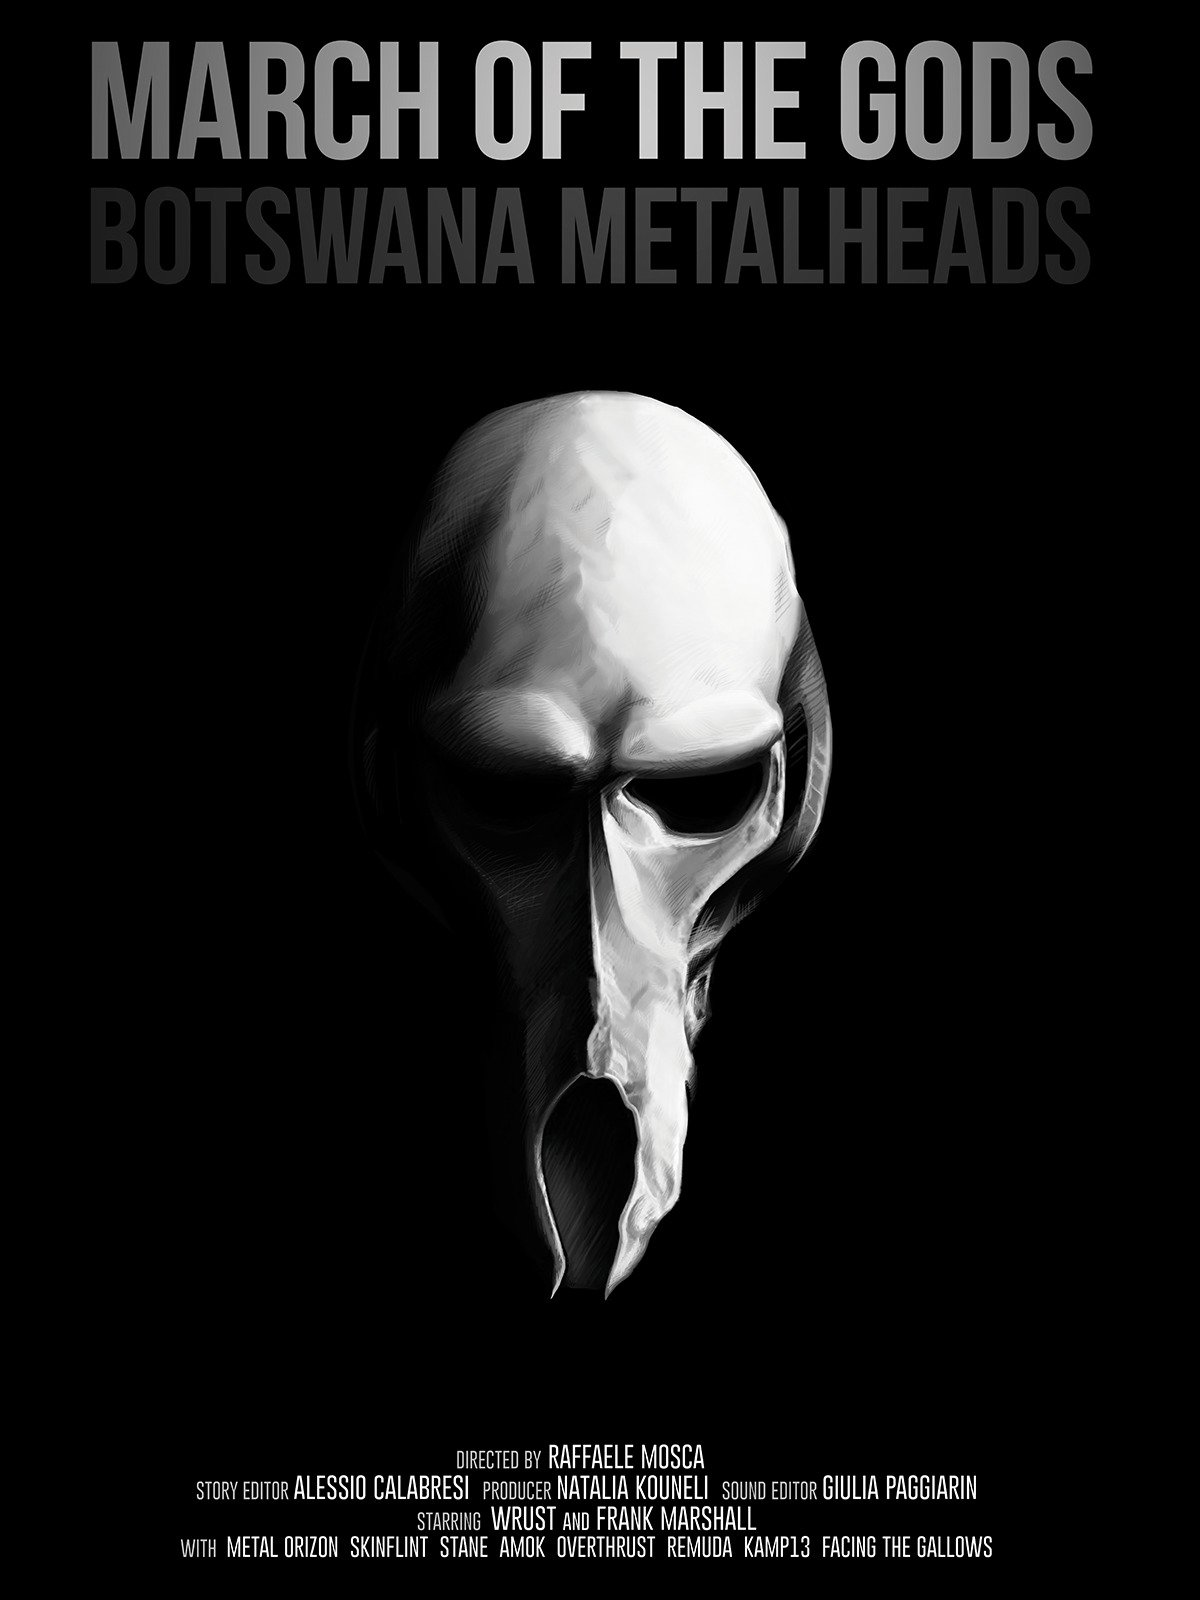 March Of The Gods Botswana Metalheads